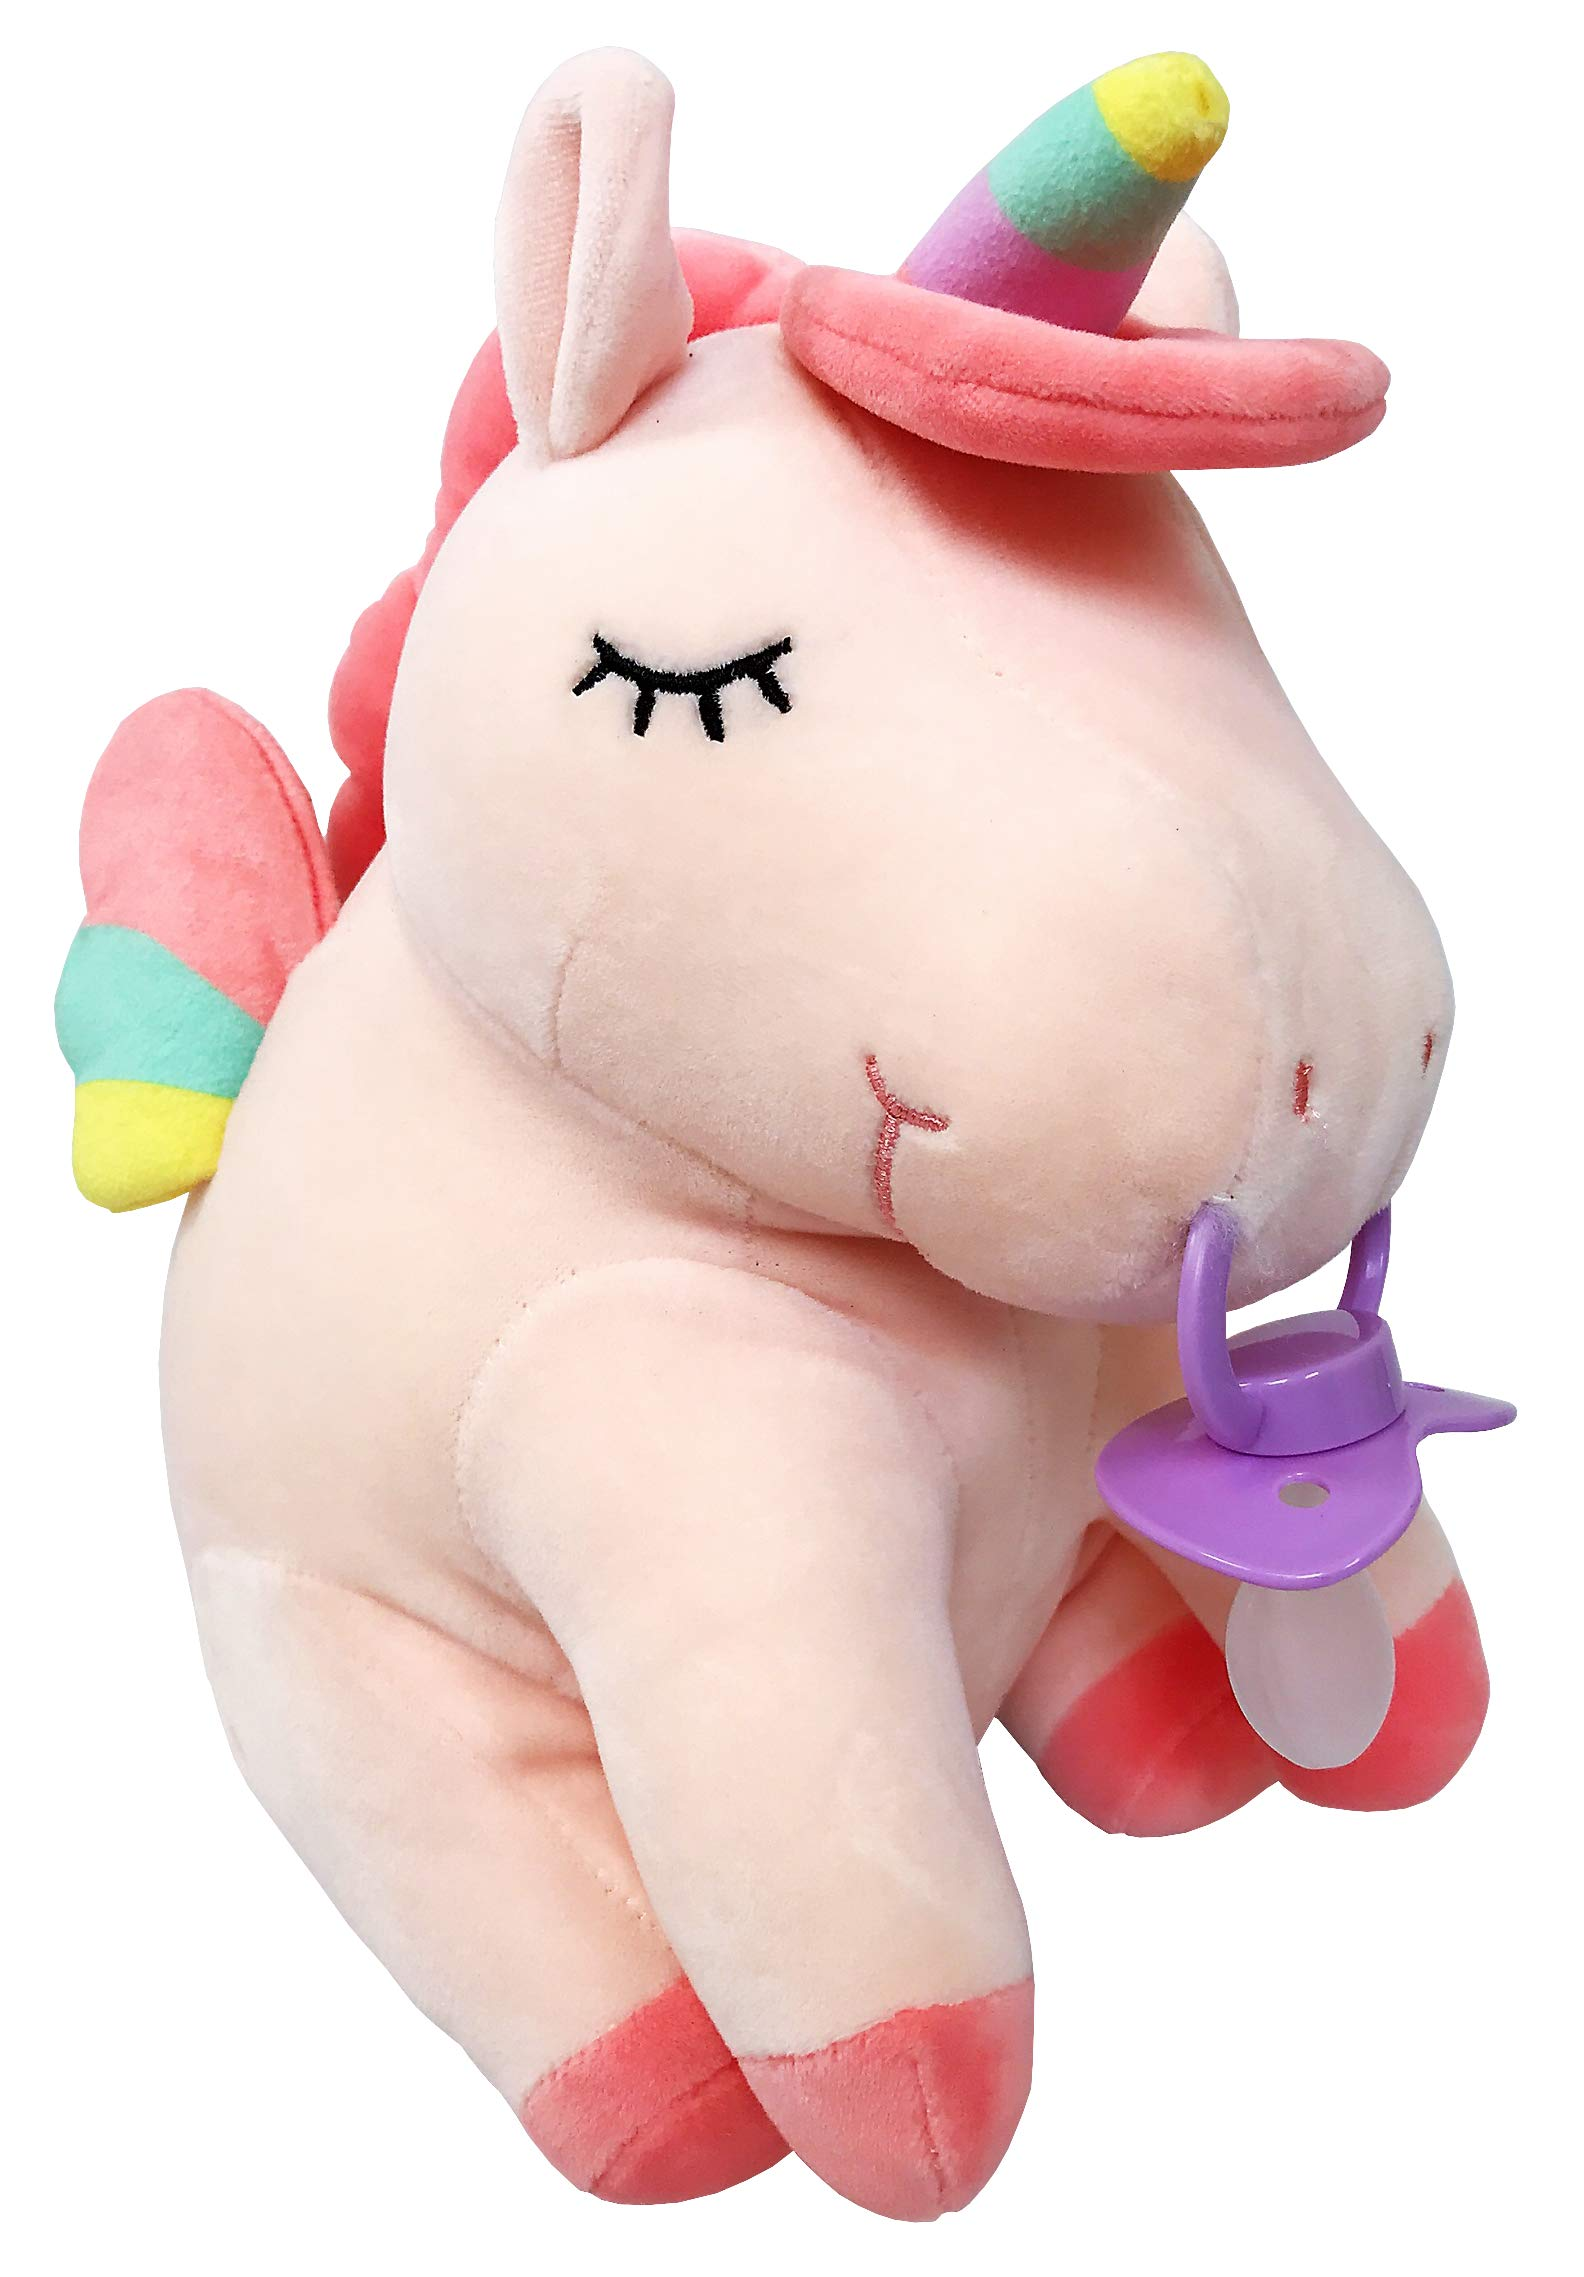 Envy Body Shop Adult Pacifier Stuffie Animal Plush Kiss The Unicorn Pacifier Holder (Pink) by ENVY BODY SHOP